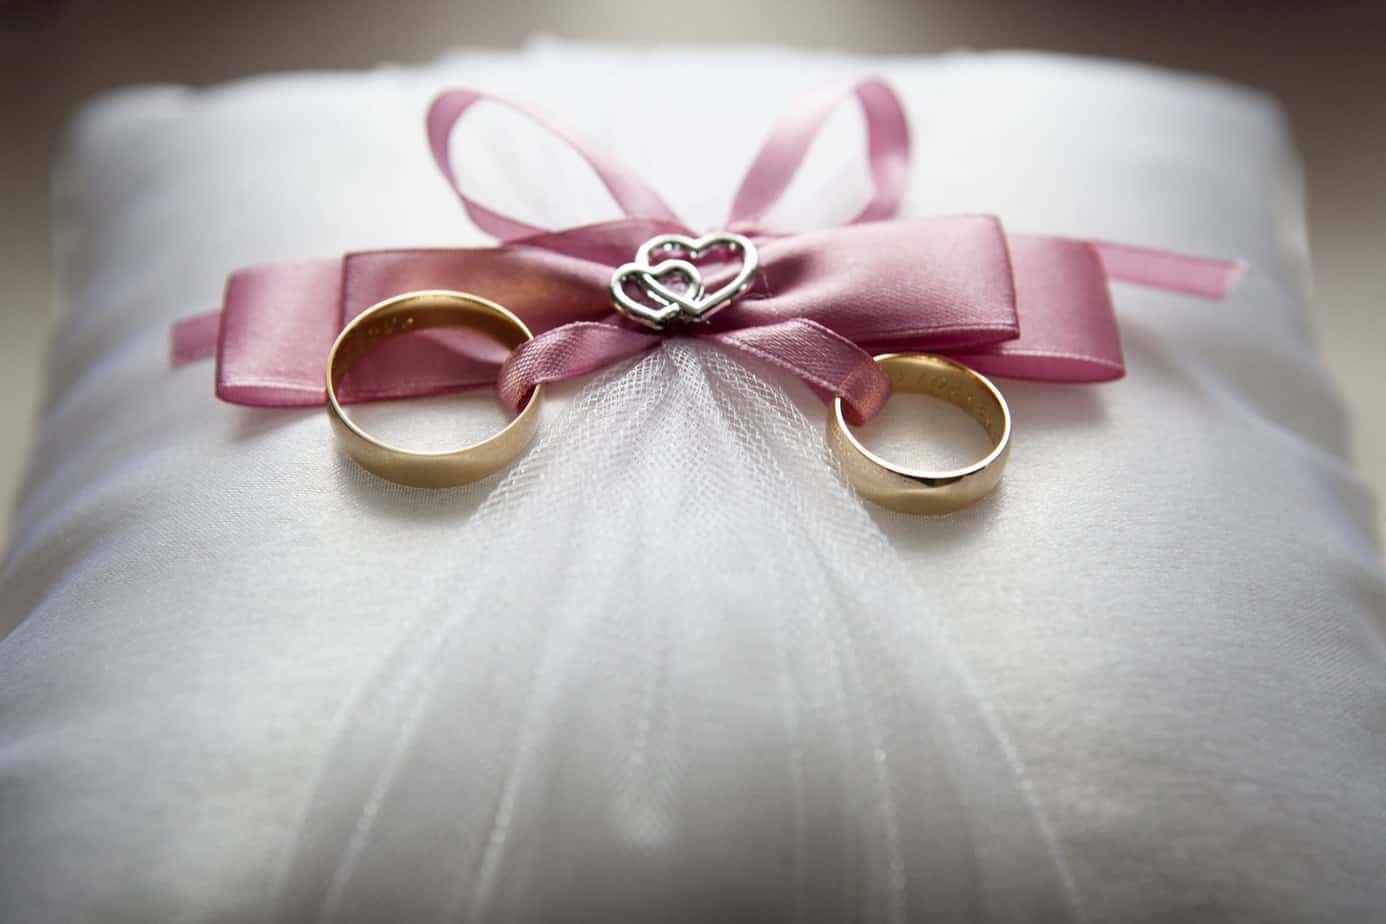 Best Burgundy Marriage Bands : Everything You Need To Know About Your Beautiful Wedding Ring set (2021)